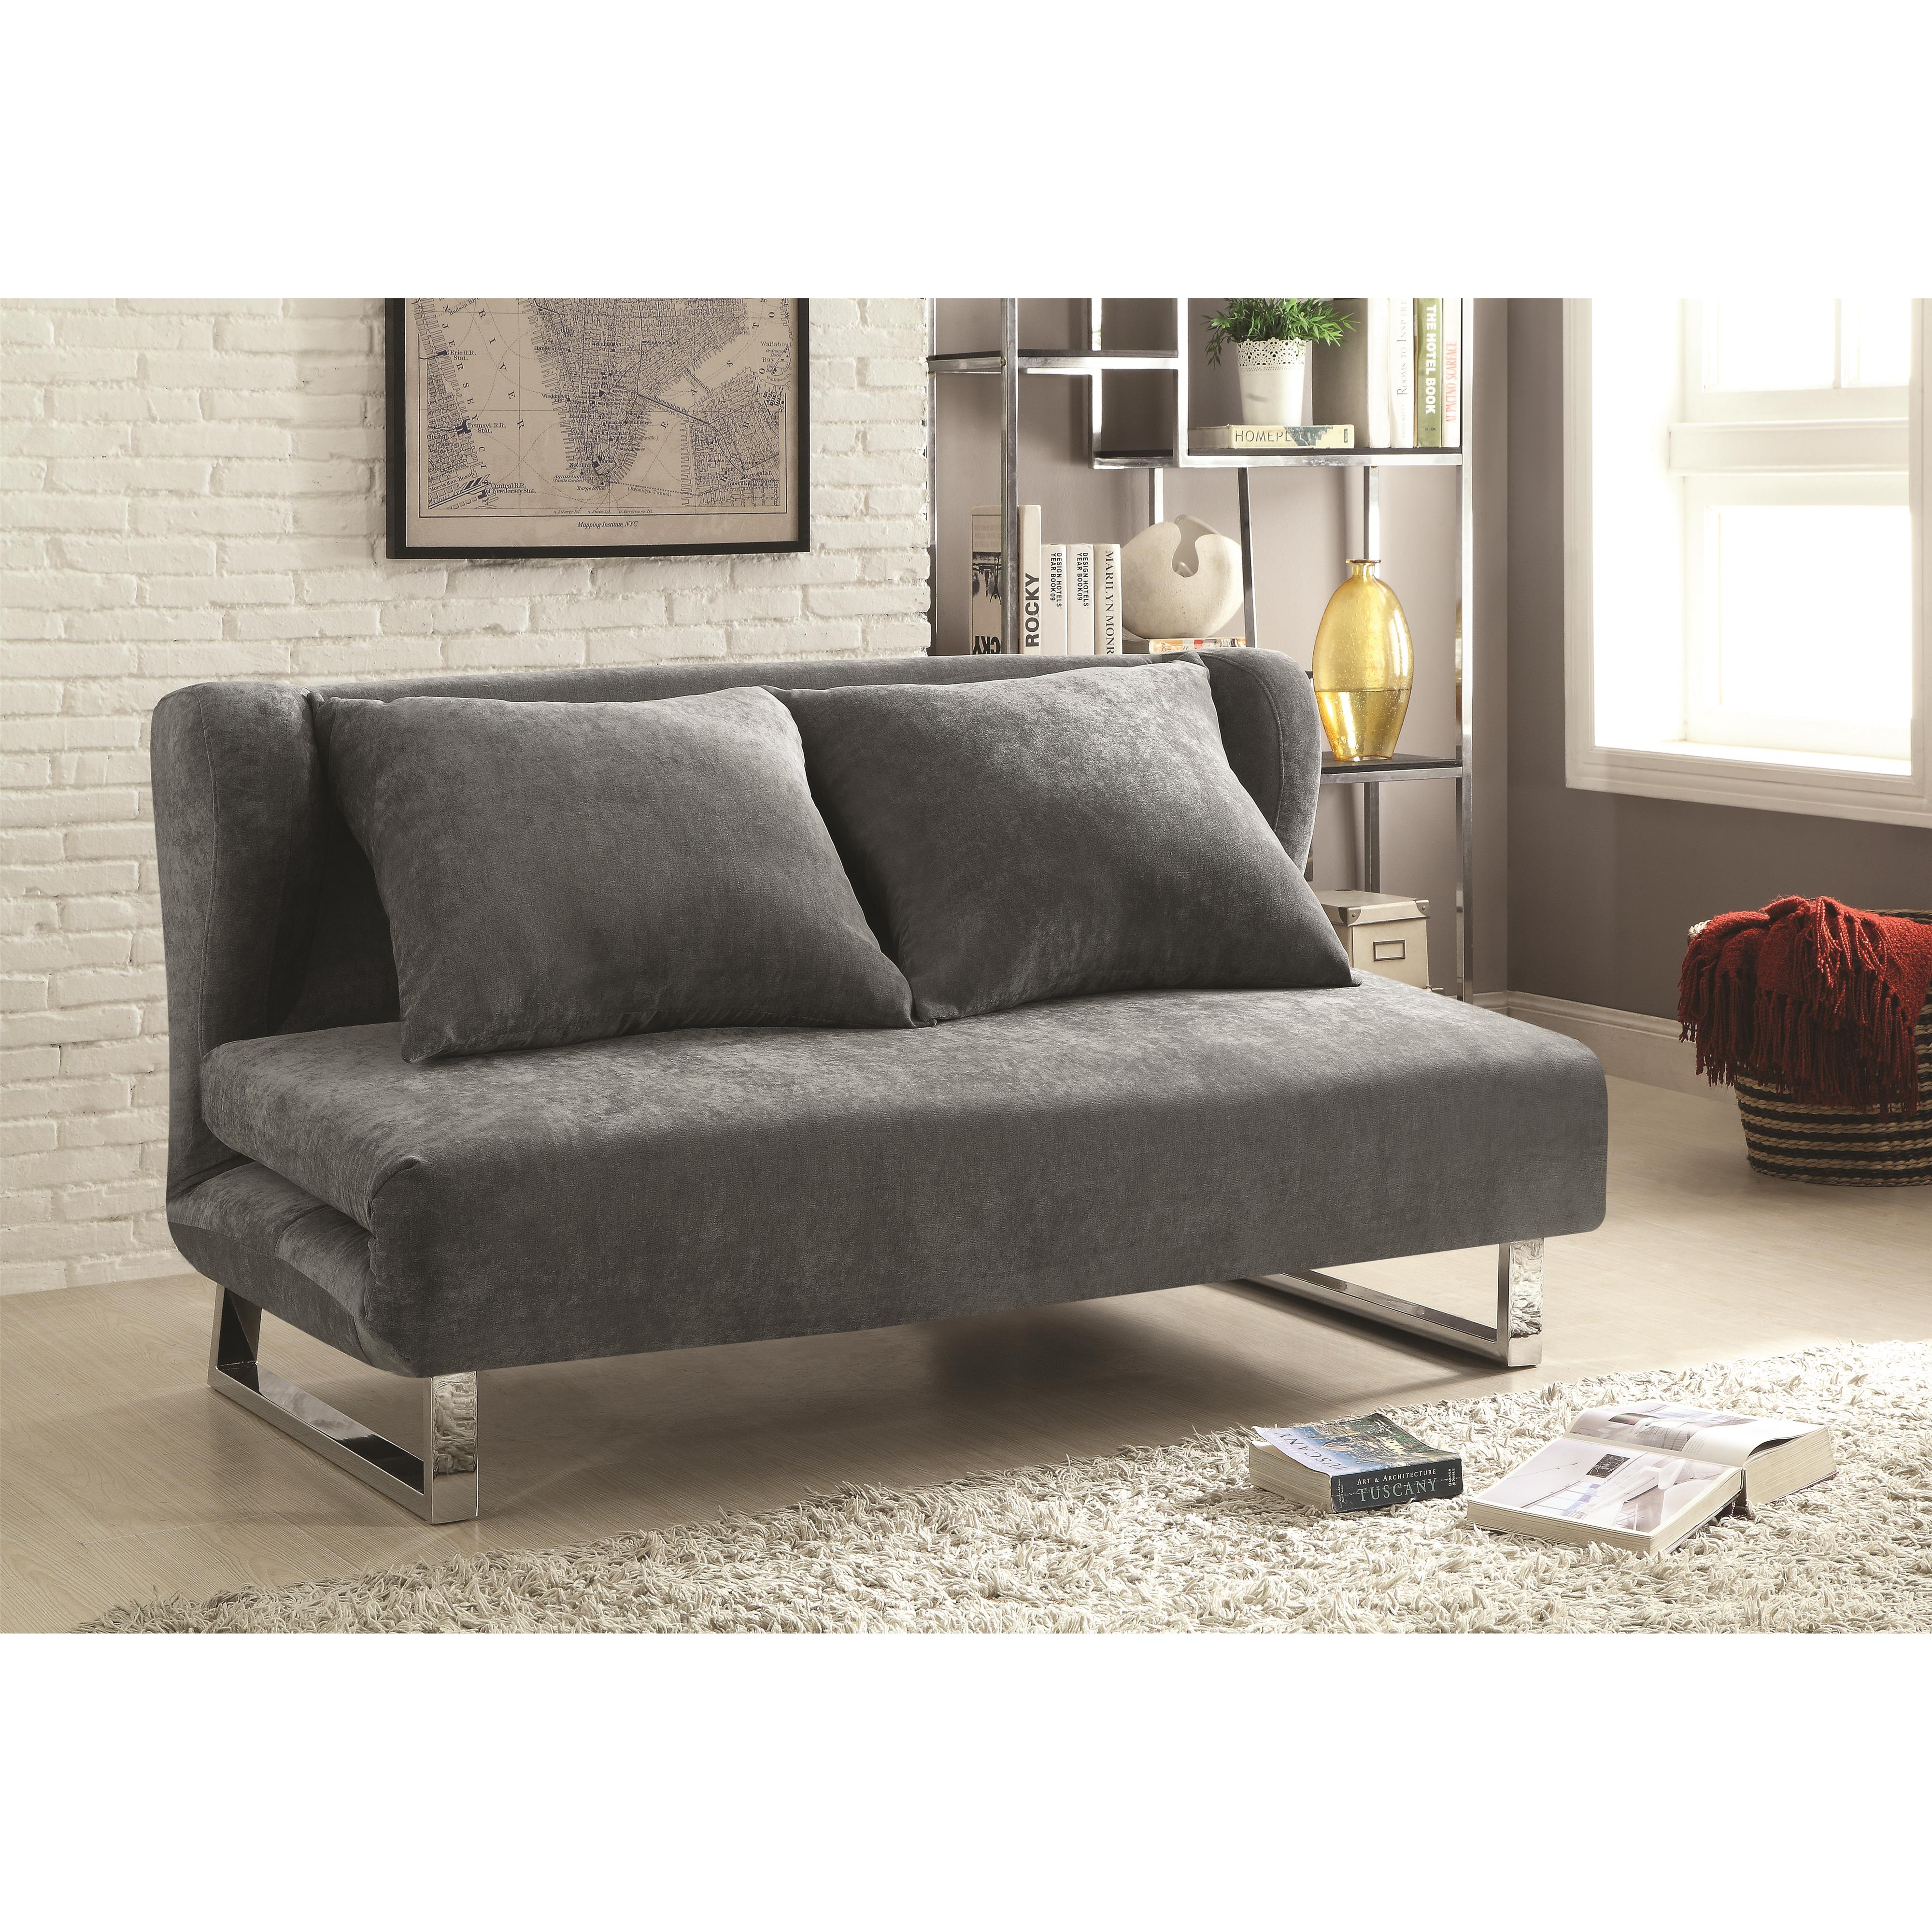 modern line furniture sofa sleepers white slipcover for t cushion beds and futons  transitional velvet bed